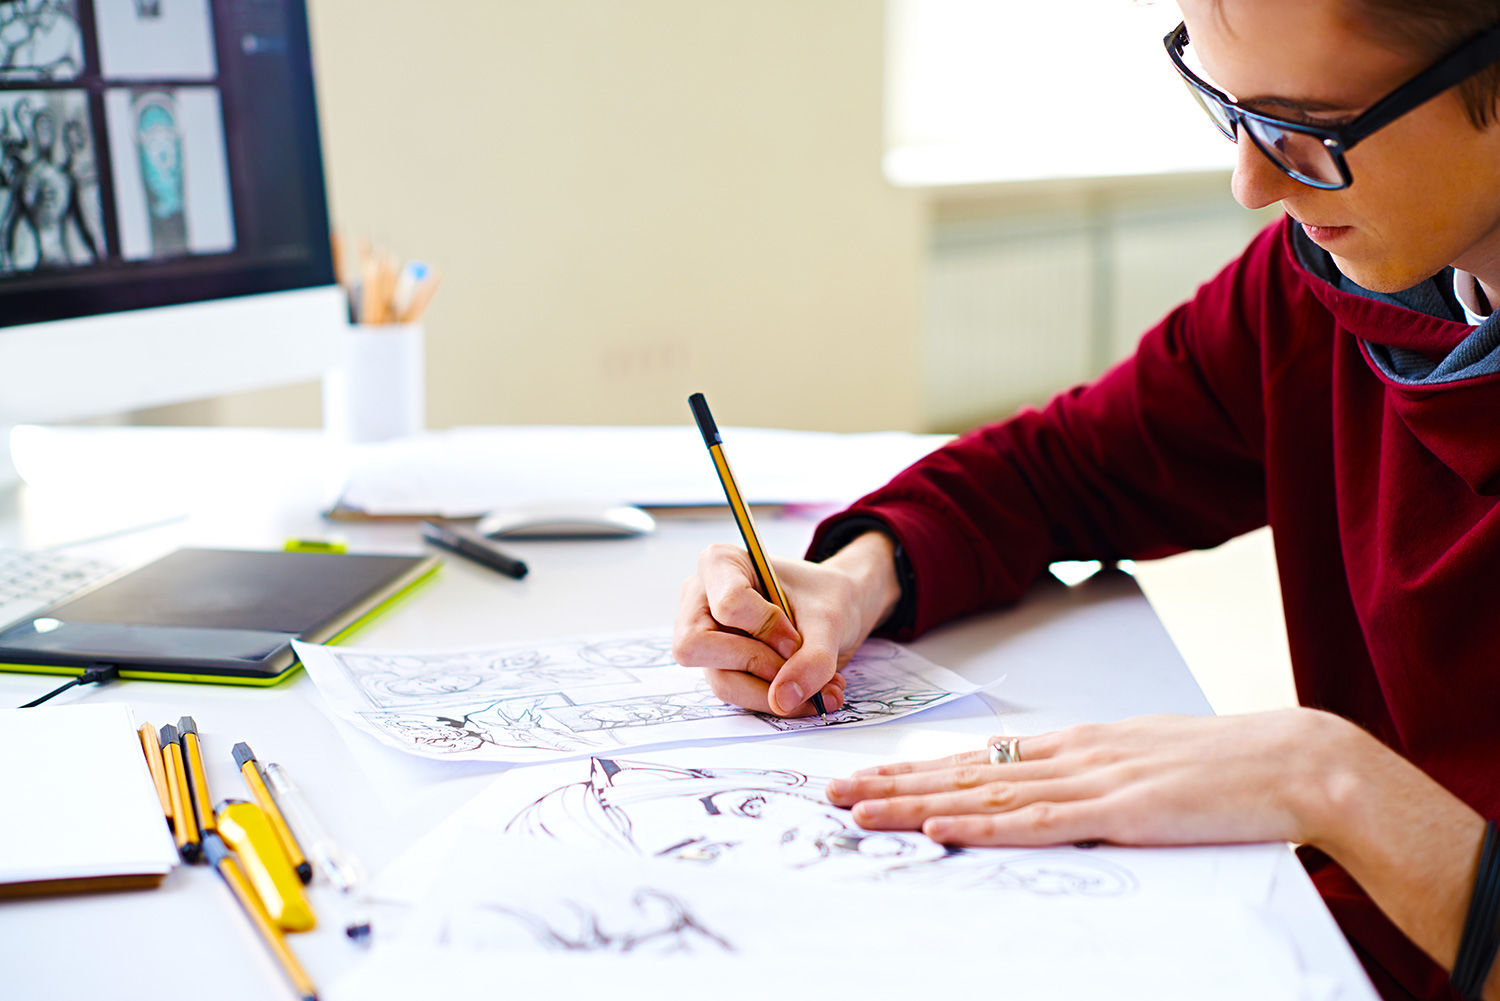 How to Order Illustrations from a Freelance Artist